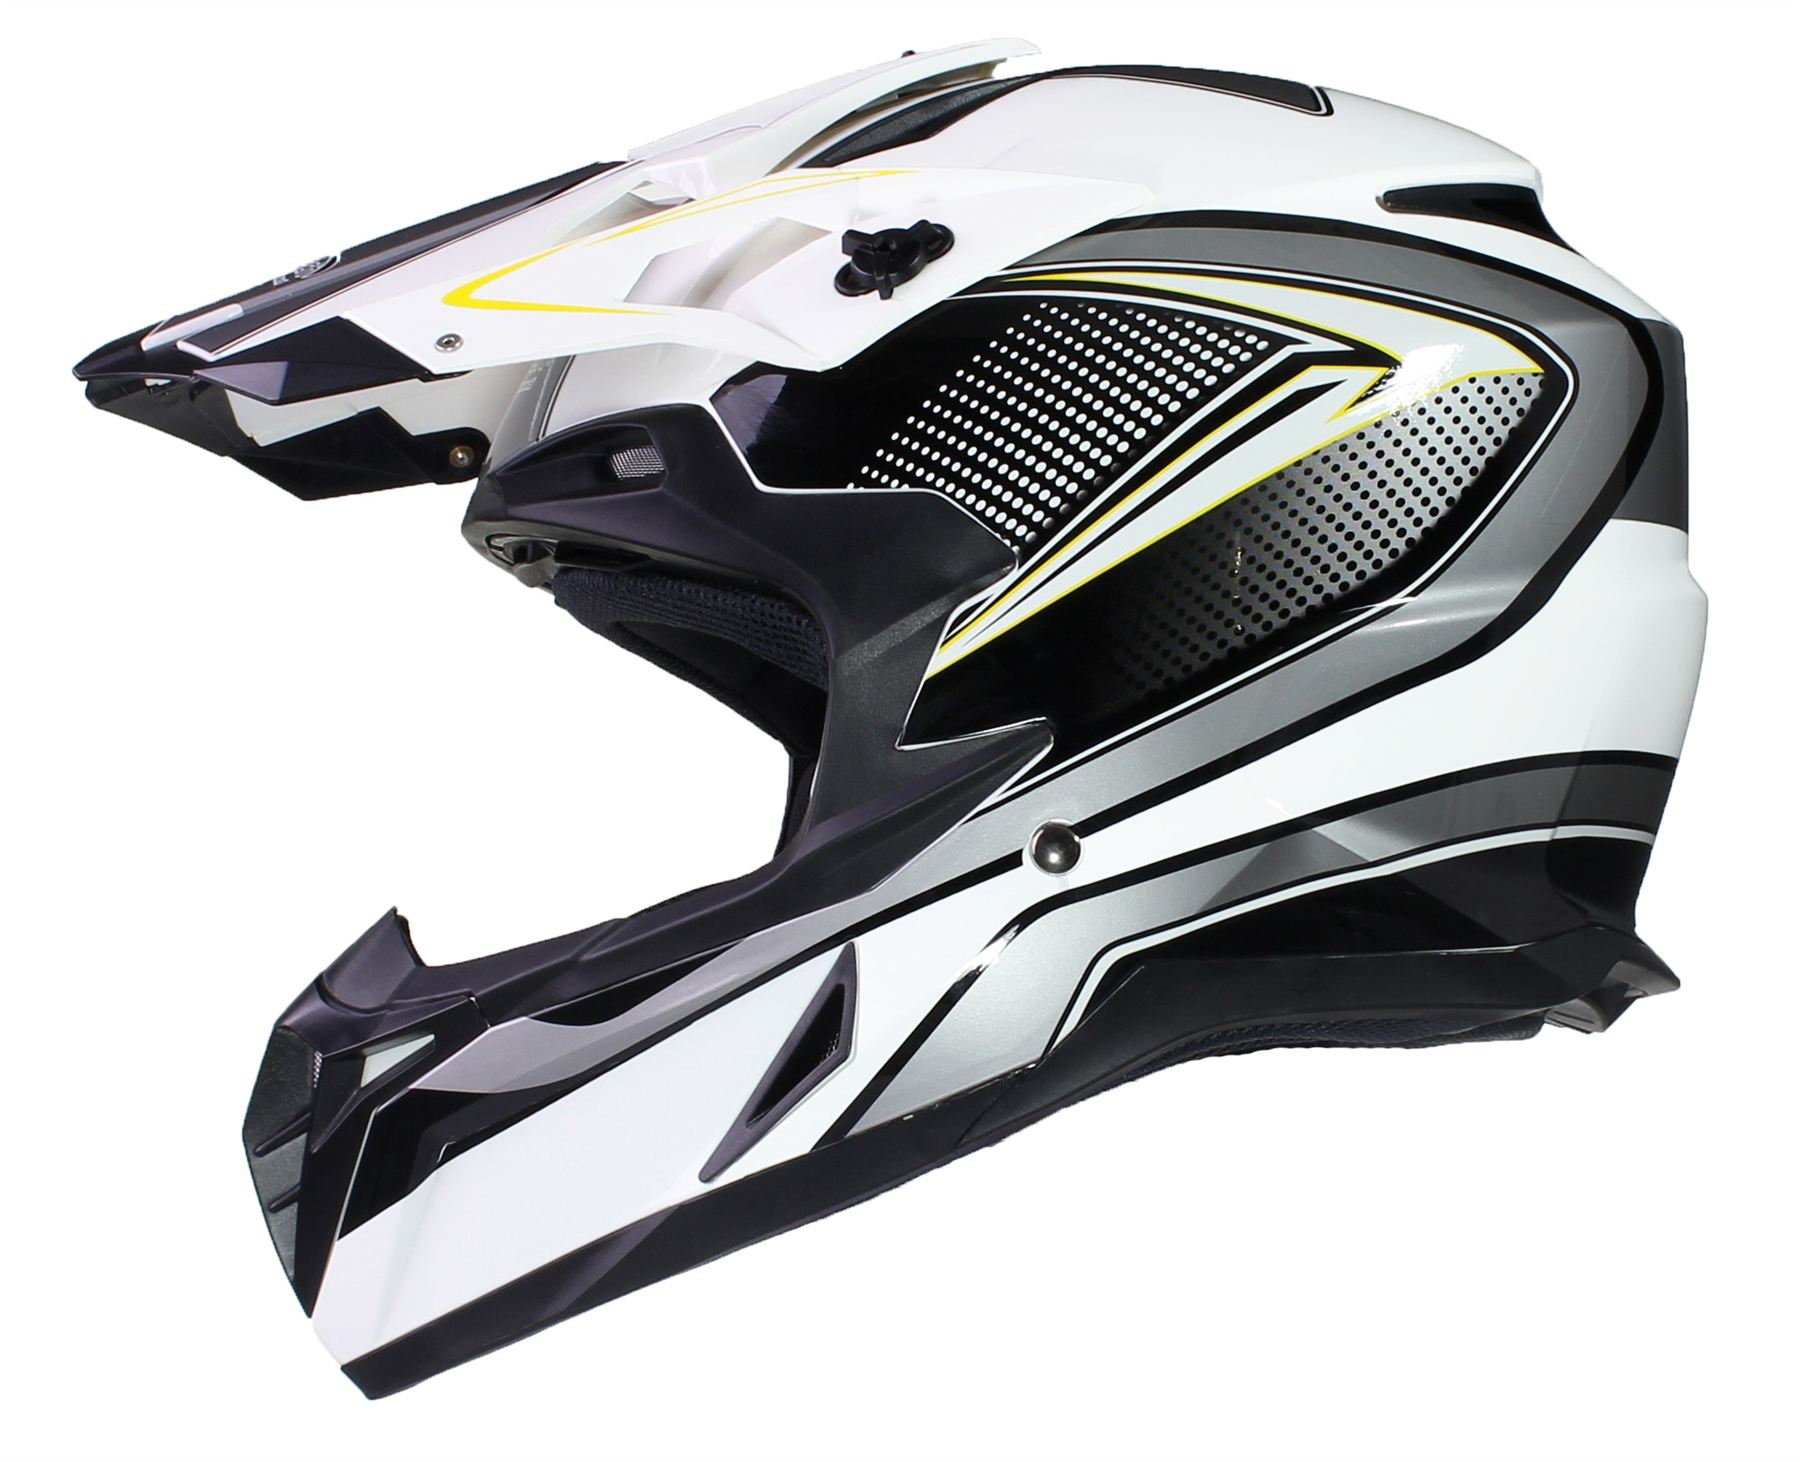 casque motocross moto enduro quad atv cross helm hors route fmx mx mtb ebay. Black Bedroom Furniture Sets. Home Design Ideas